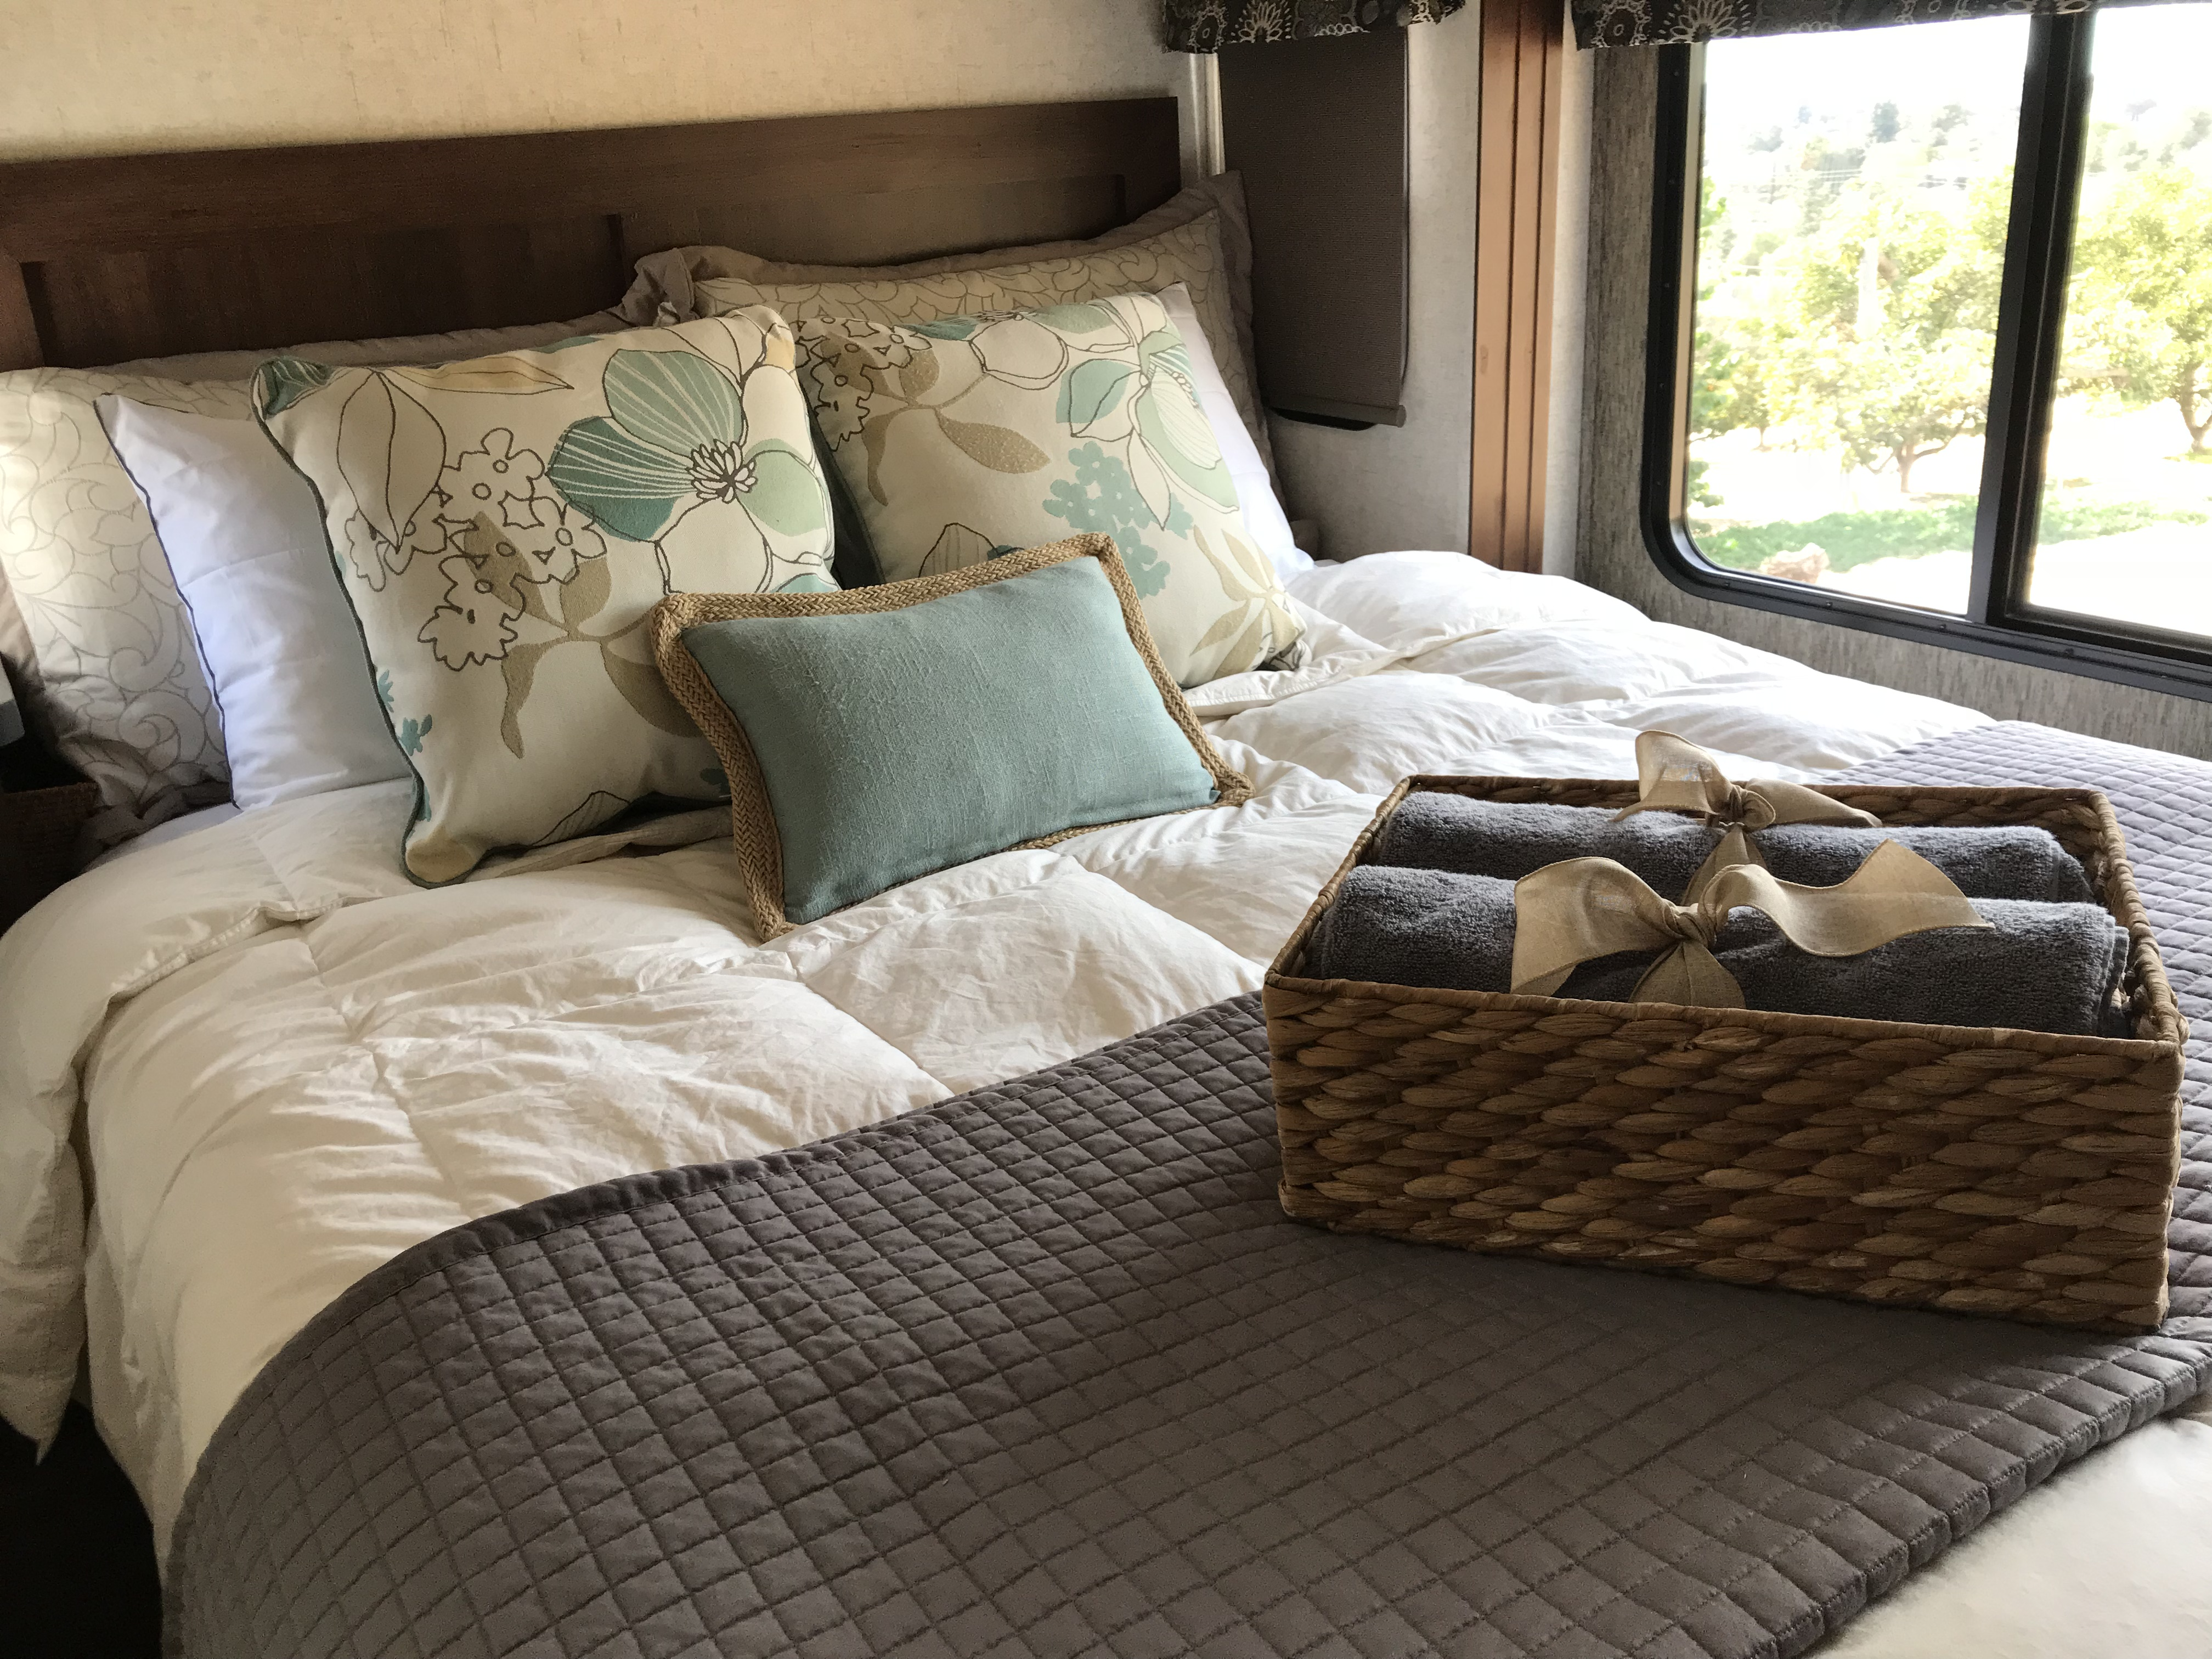 This mattress is a fluffy NEW Serta with new linens, pillows and allergy pillow covers. It is roomy and you will drift off to sleep! See the beautiful light coming in.. Forest River Sunseeker 2018